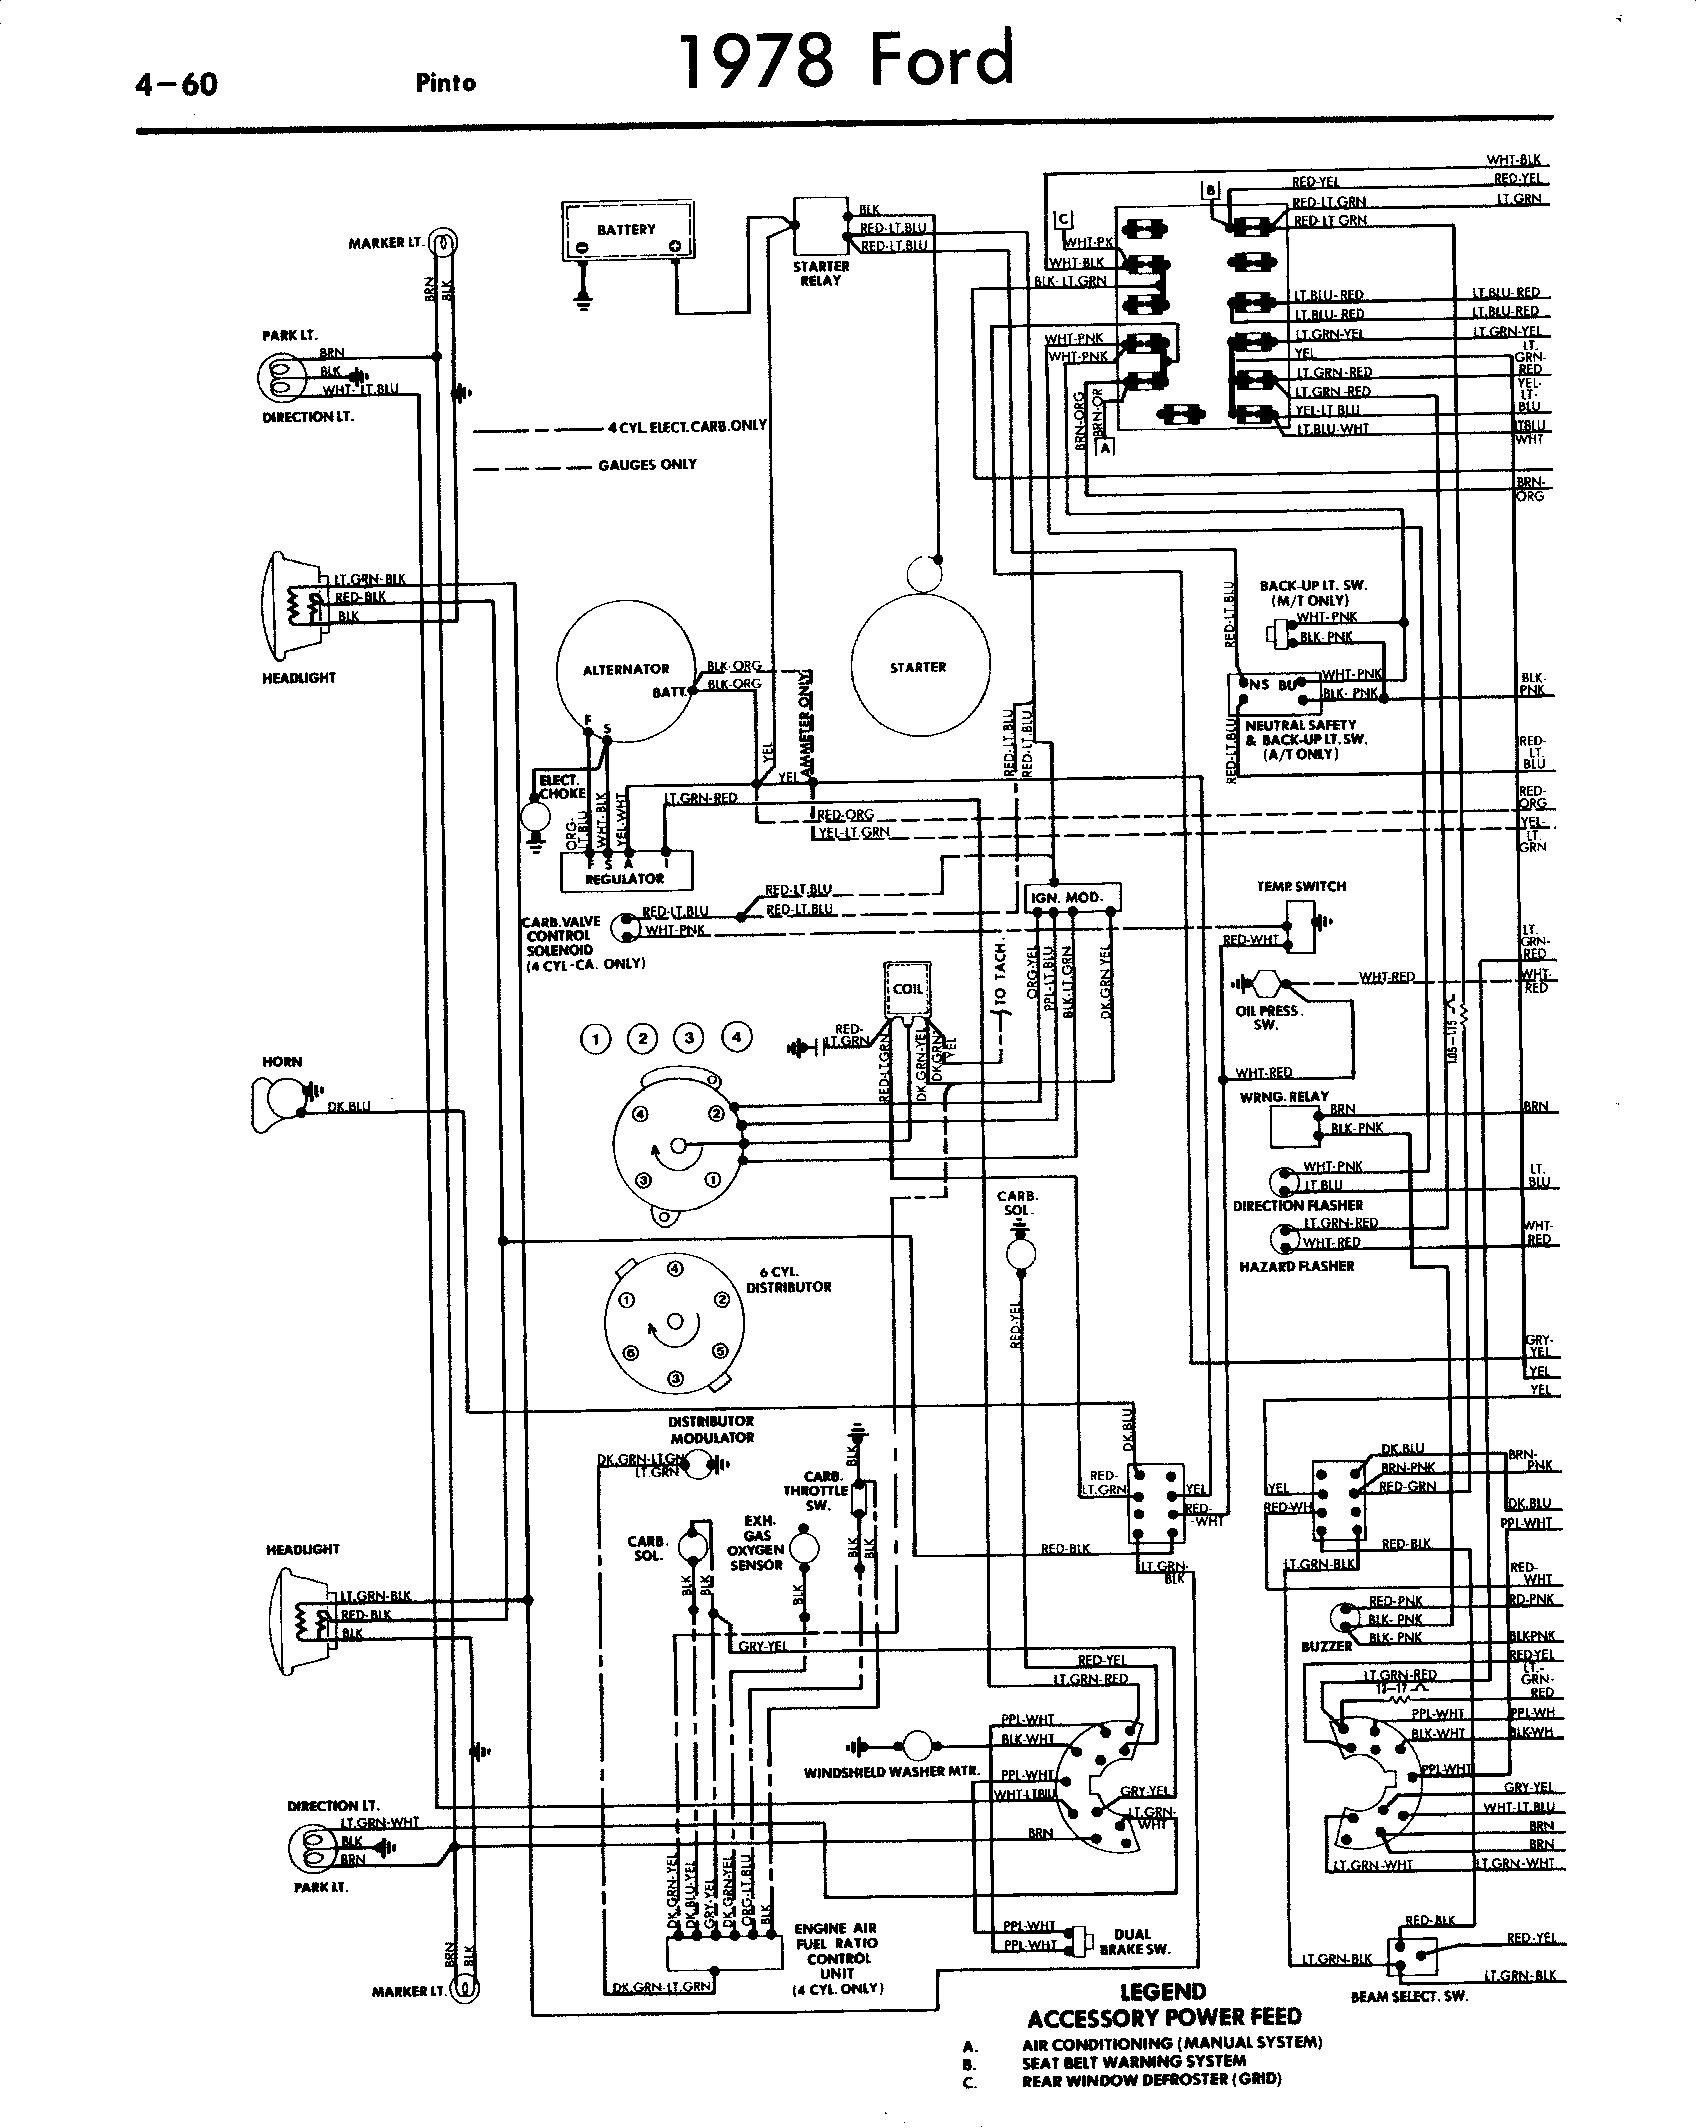 1994 Ford F 150 5 0 Engine Diagram • Wiring Diagram Image